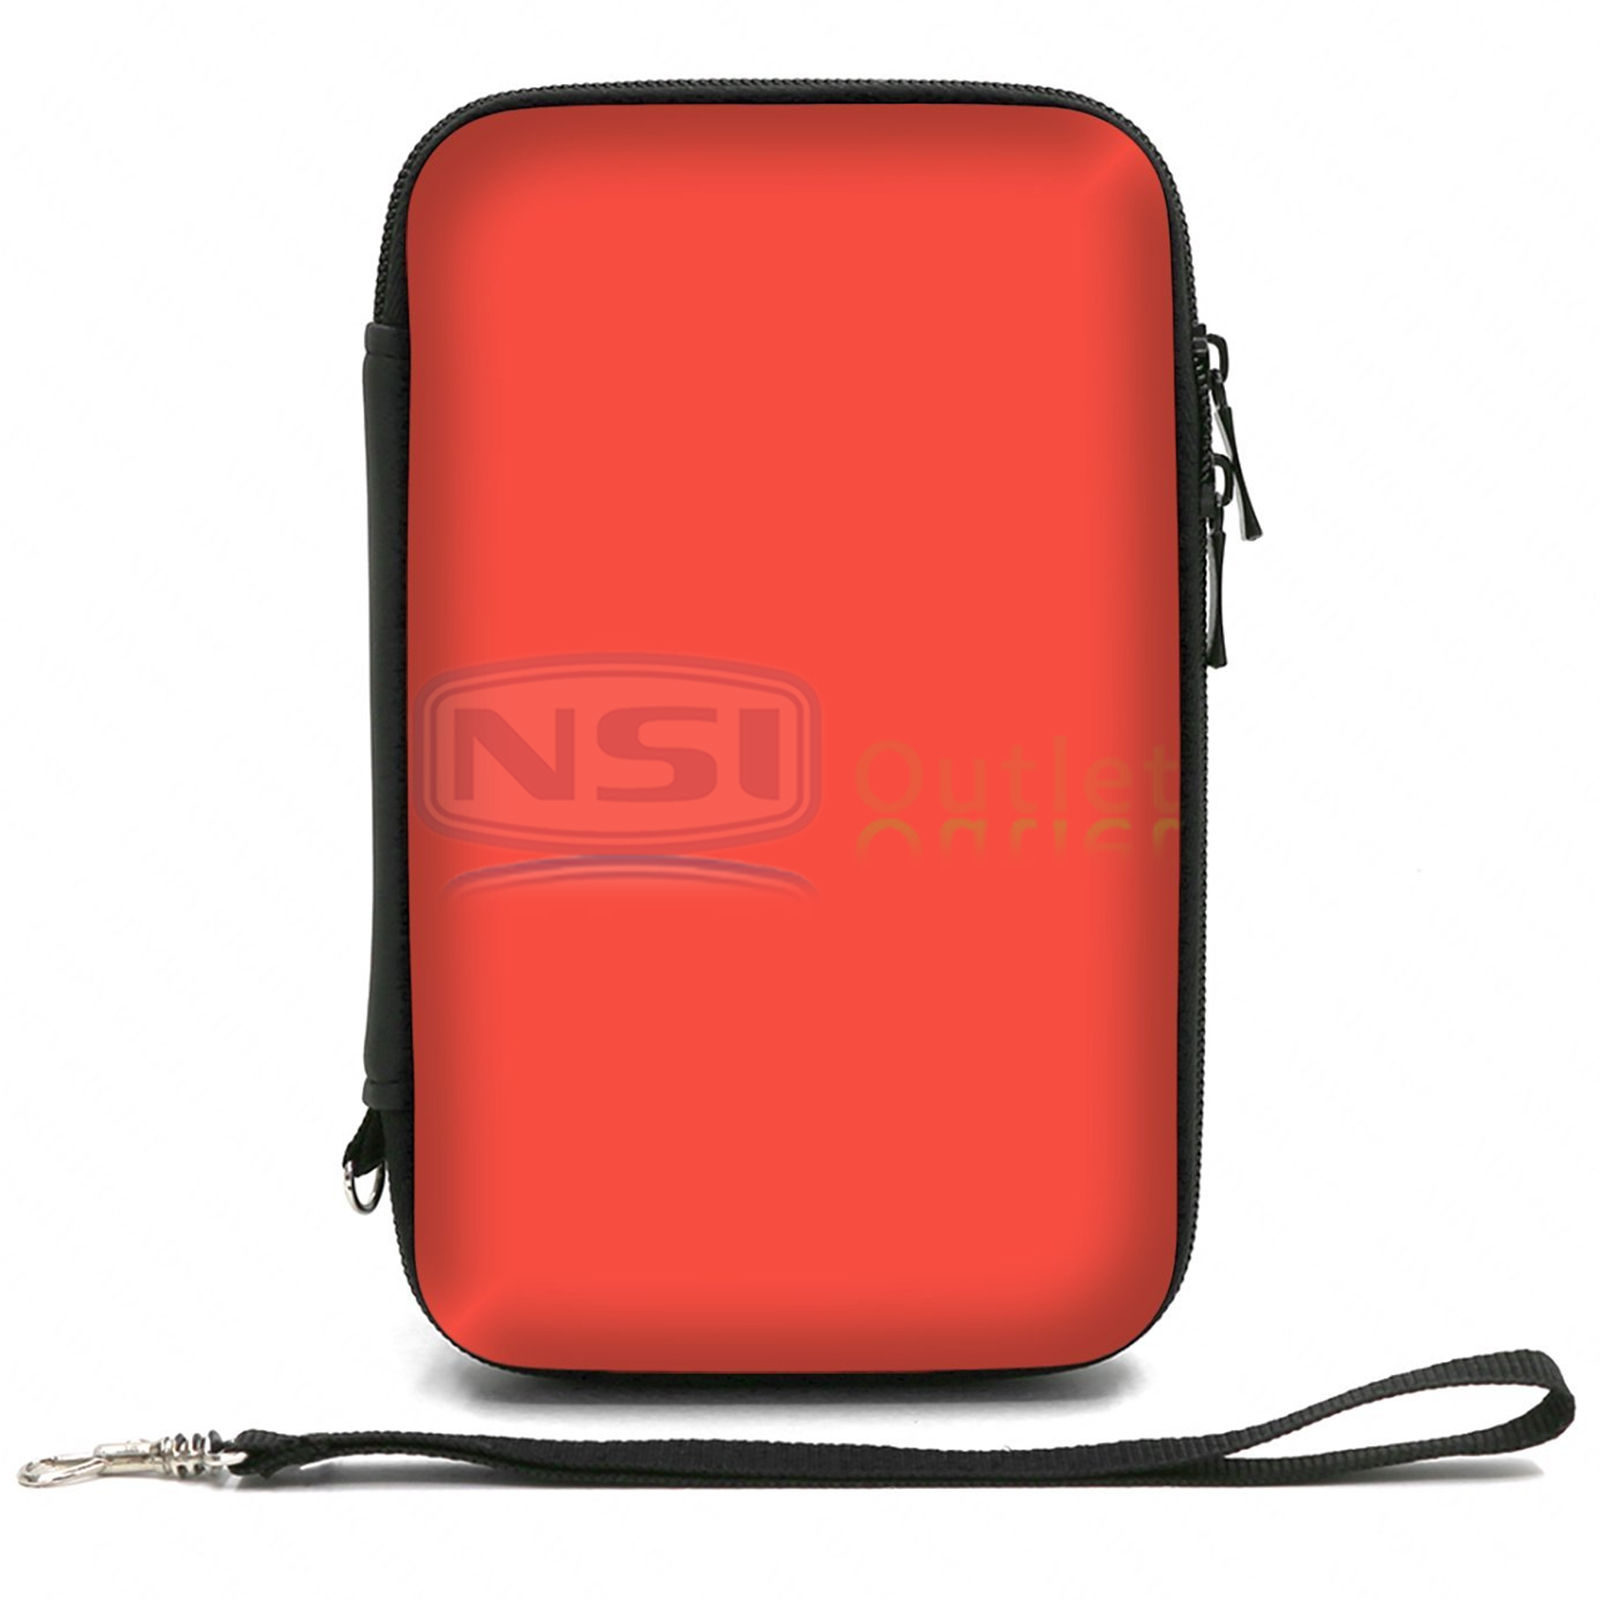 EVA-Hard-Protective-Carry-Case-Bag-Pouch-For-New-Nintendo-3DS-XL-3DS-LL-3DS